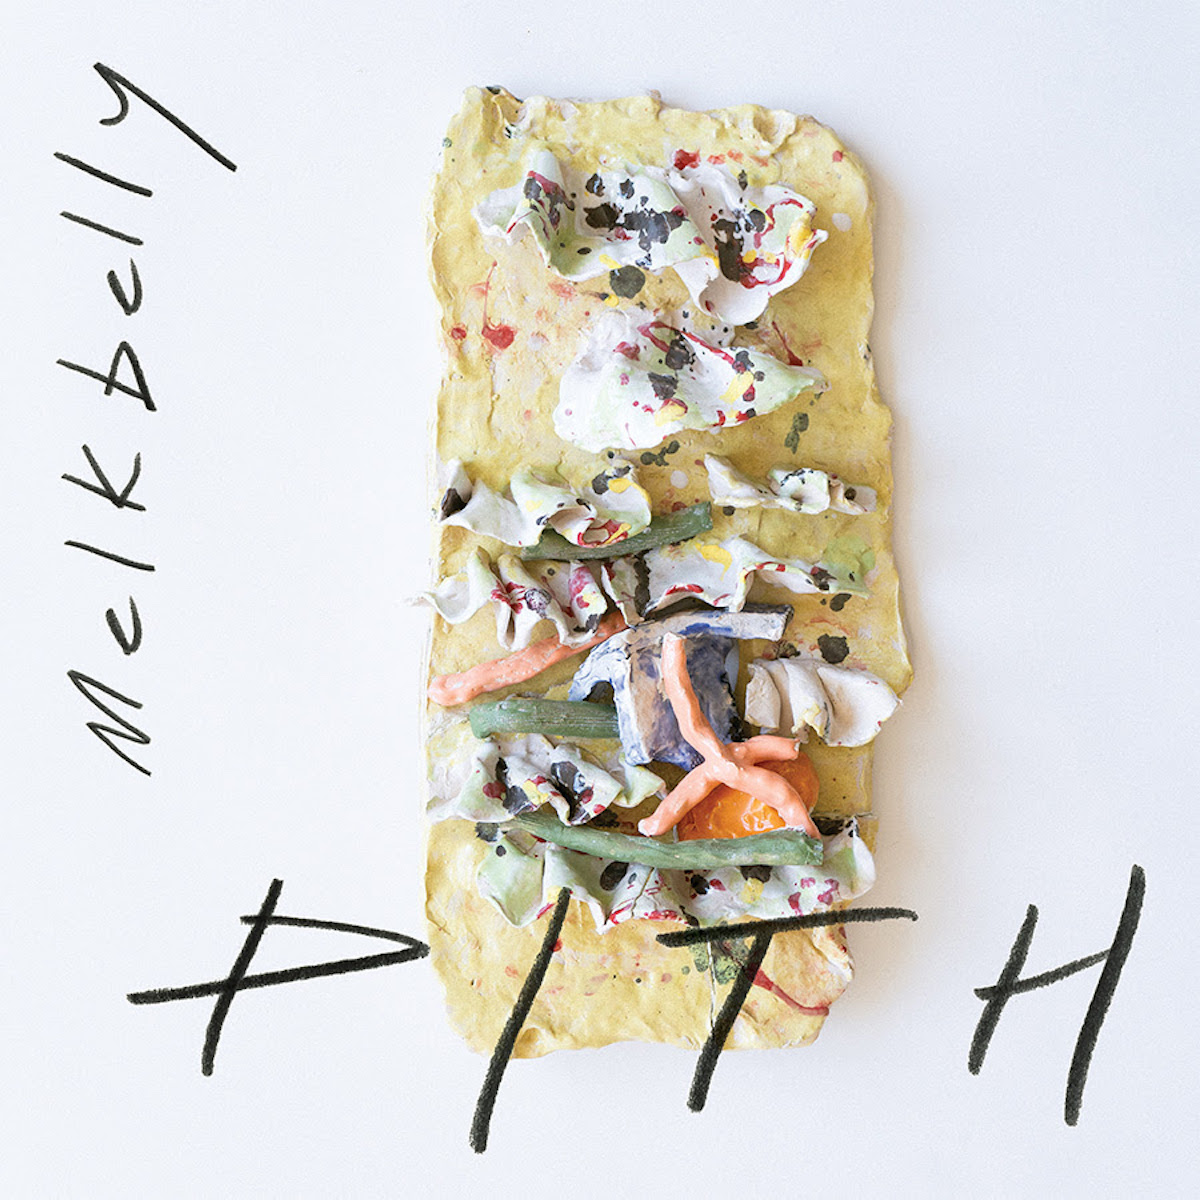 pith melkbelly album cover artwork Melkbelly announce new album PITH, plus North American tour